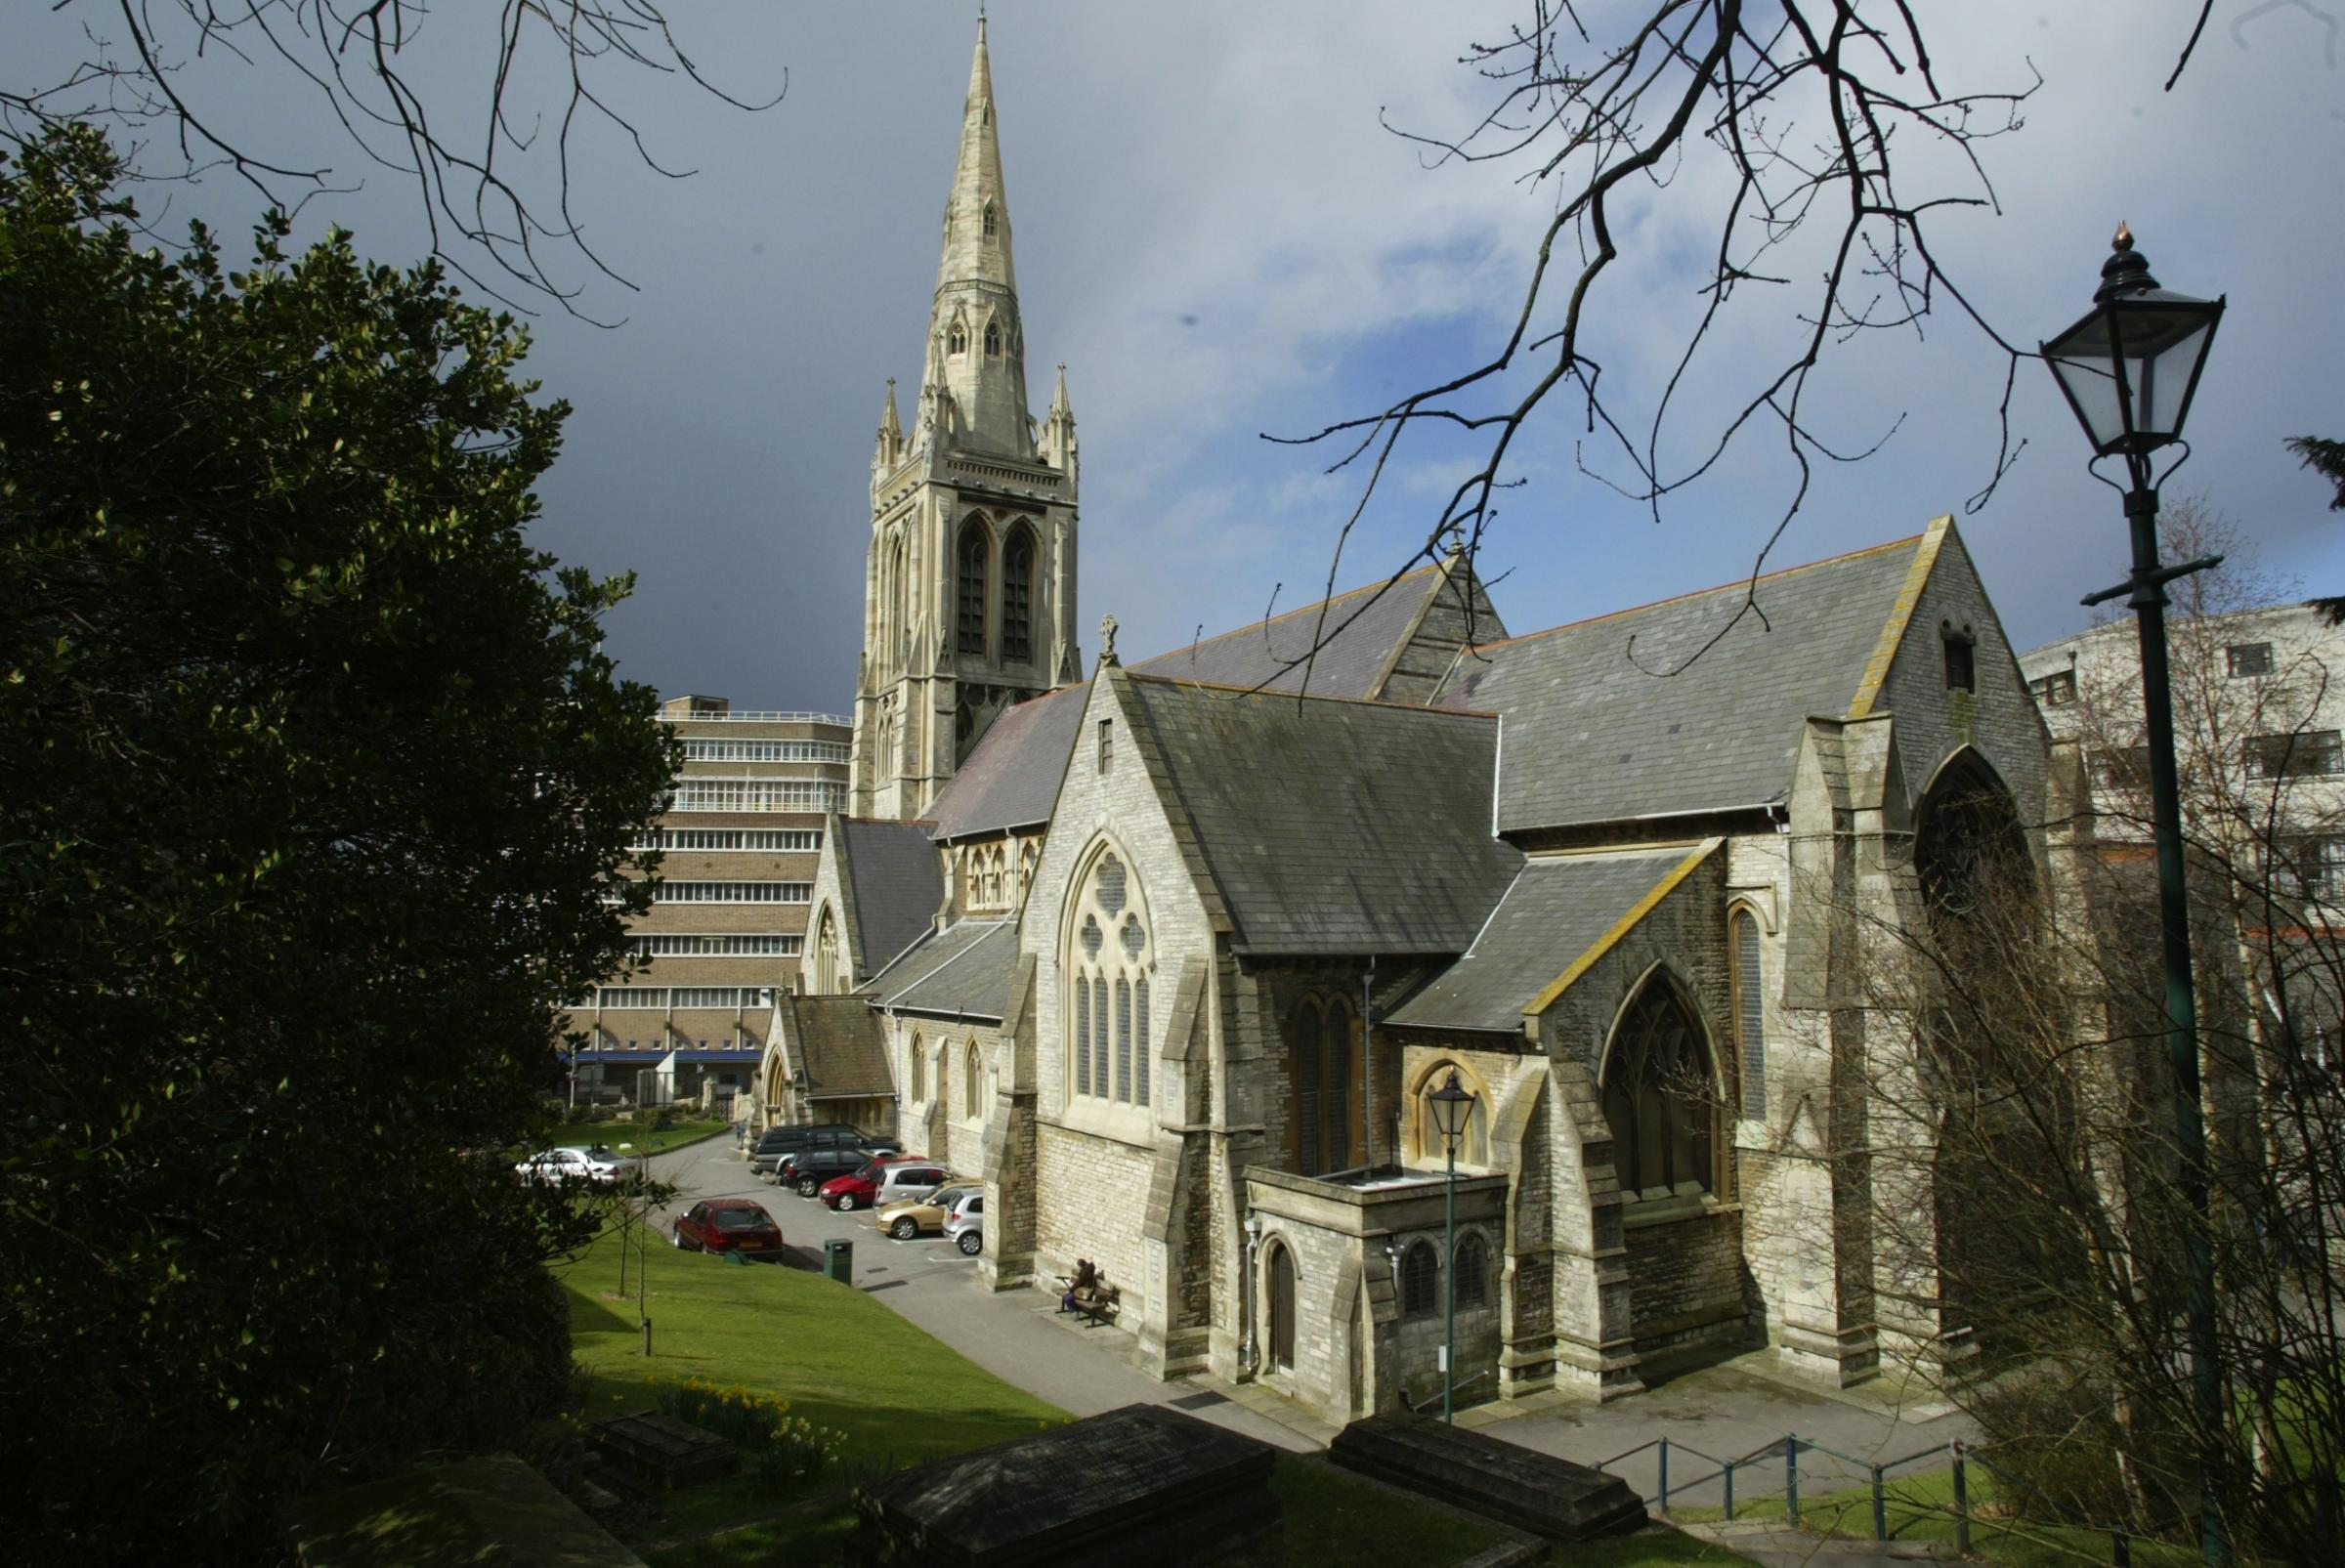 Man who harassed vicar is banned from three Bournemouth churches until 2022